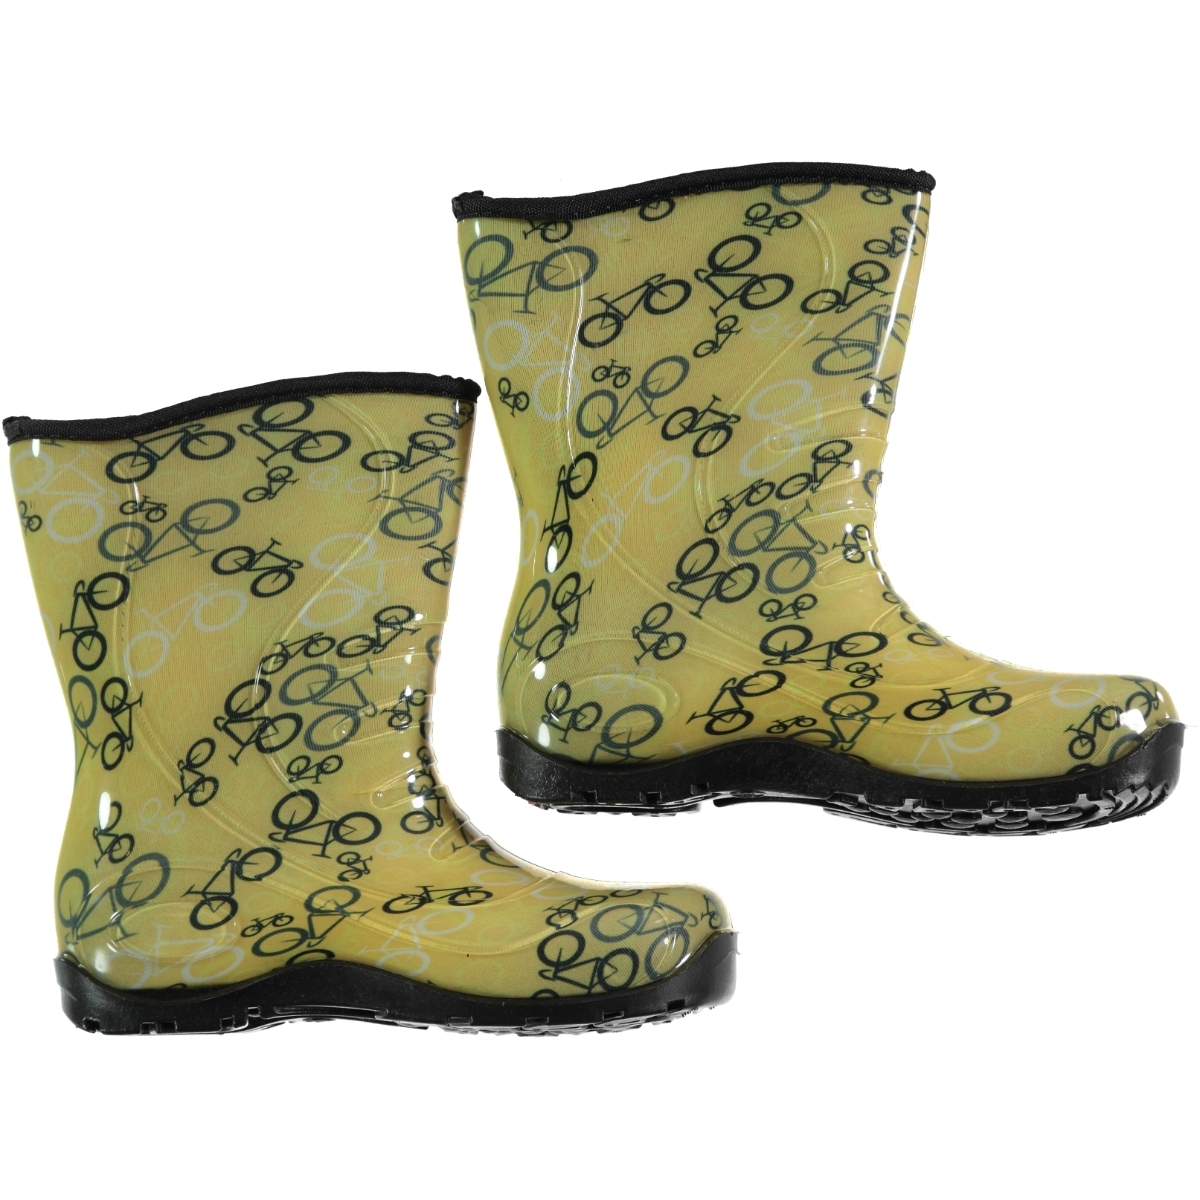 Civil Bike Boots Boy Yellow Patterned Number 30-35